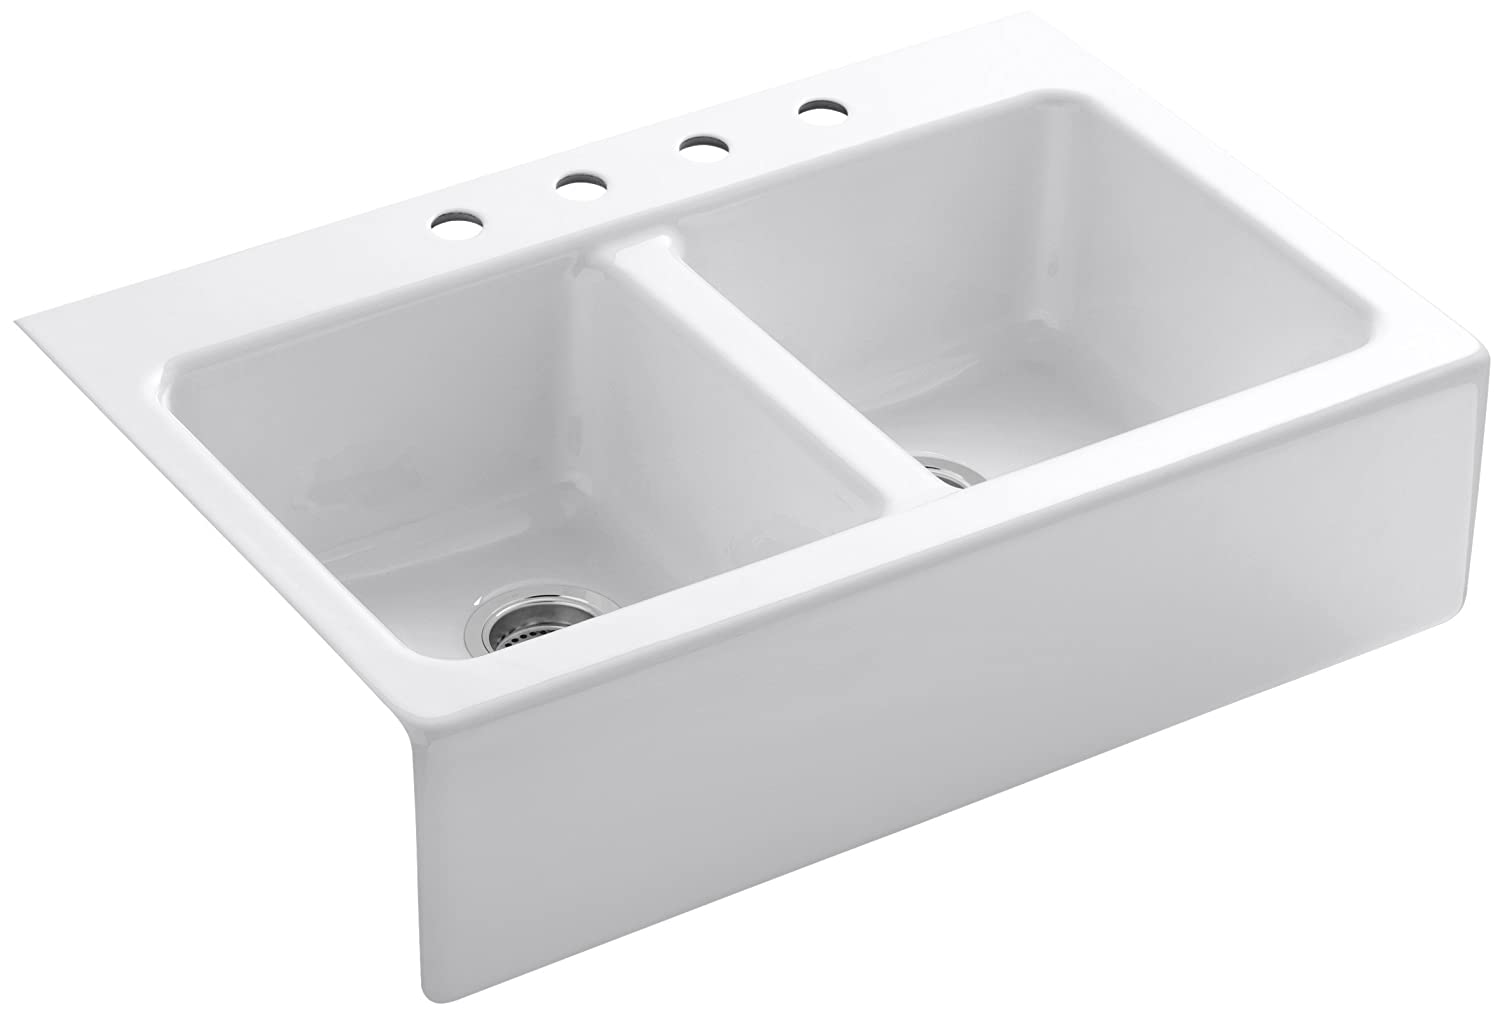 ... sink with the beauty of an apron sink. Four installation holes